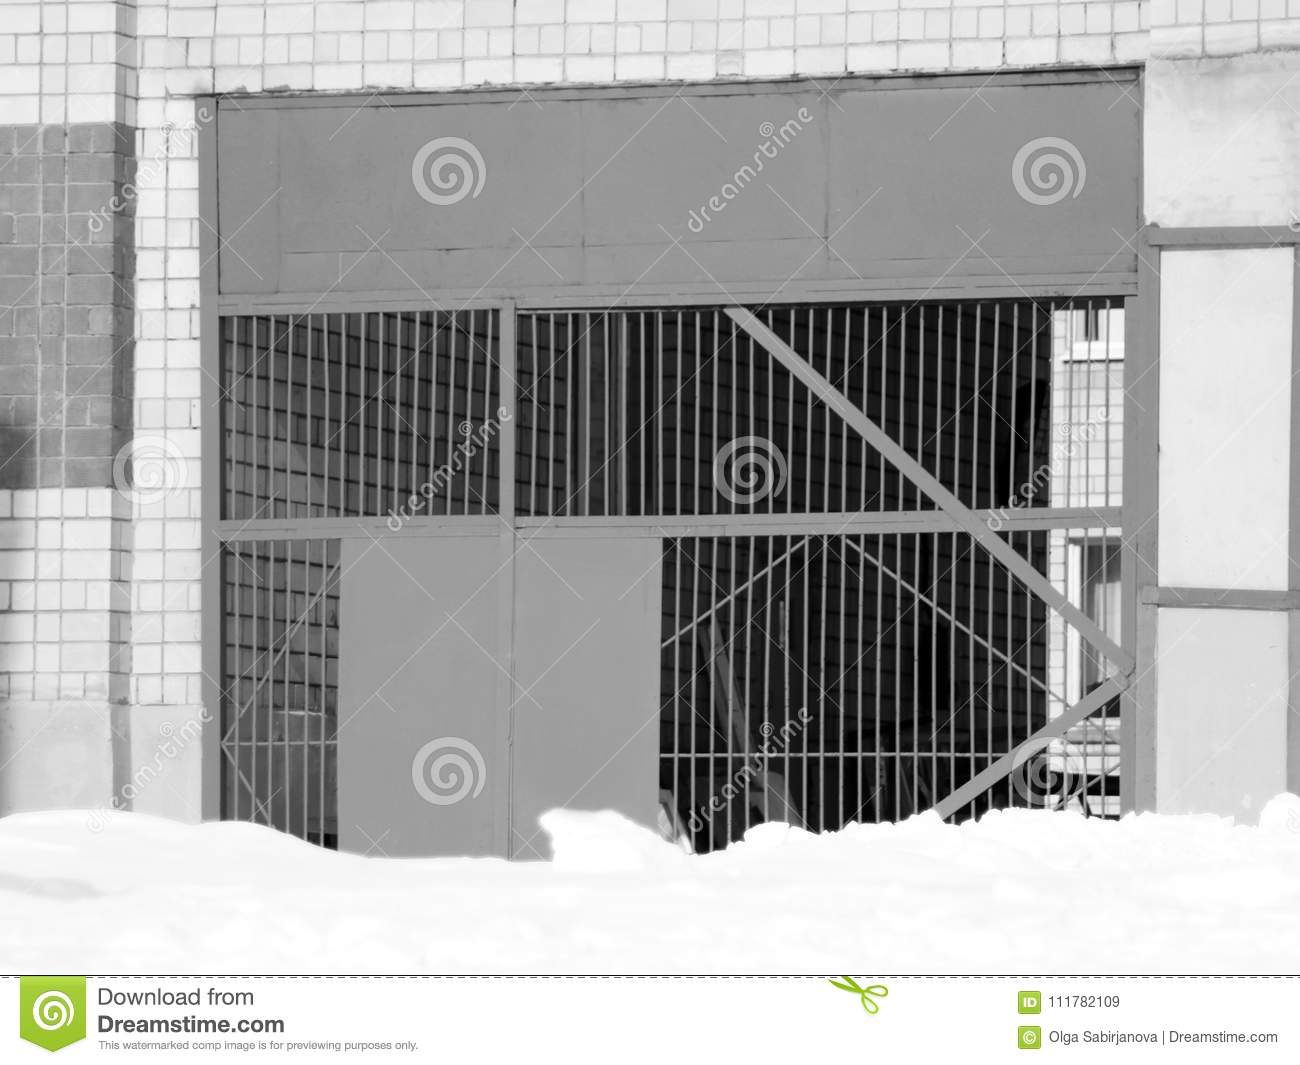 Large metal gate in the building